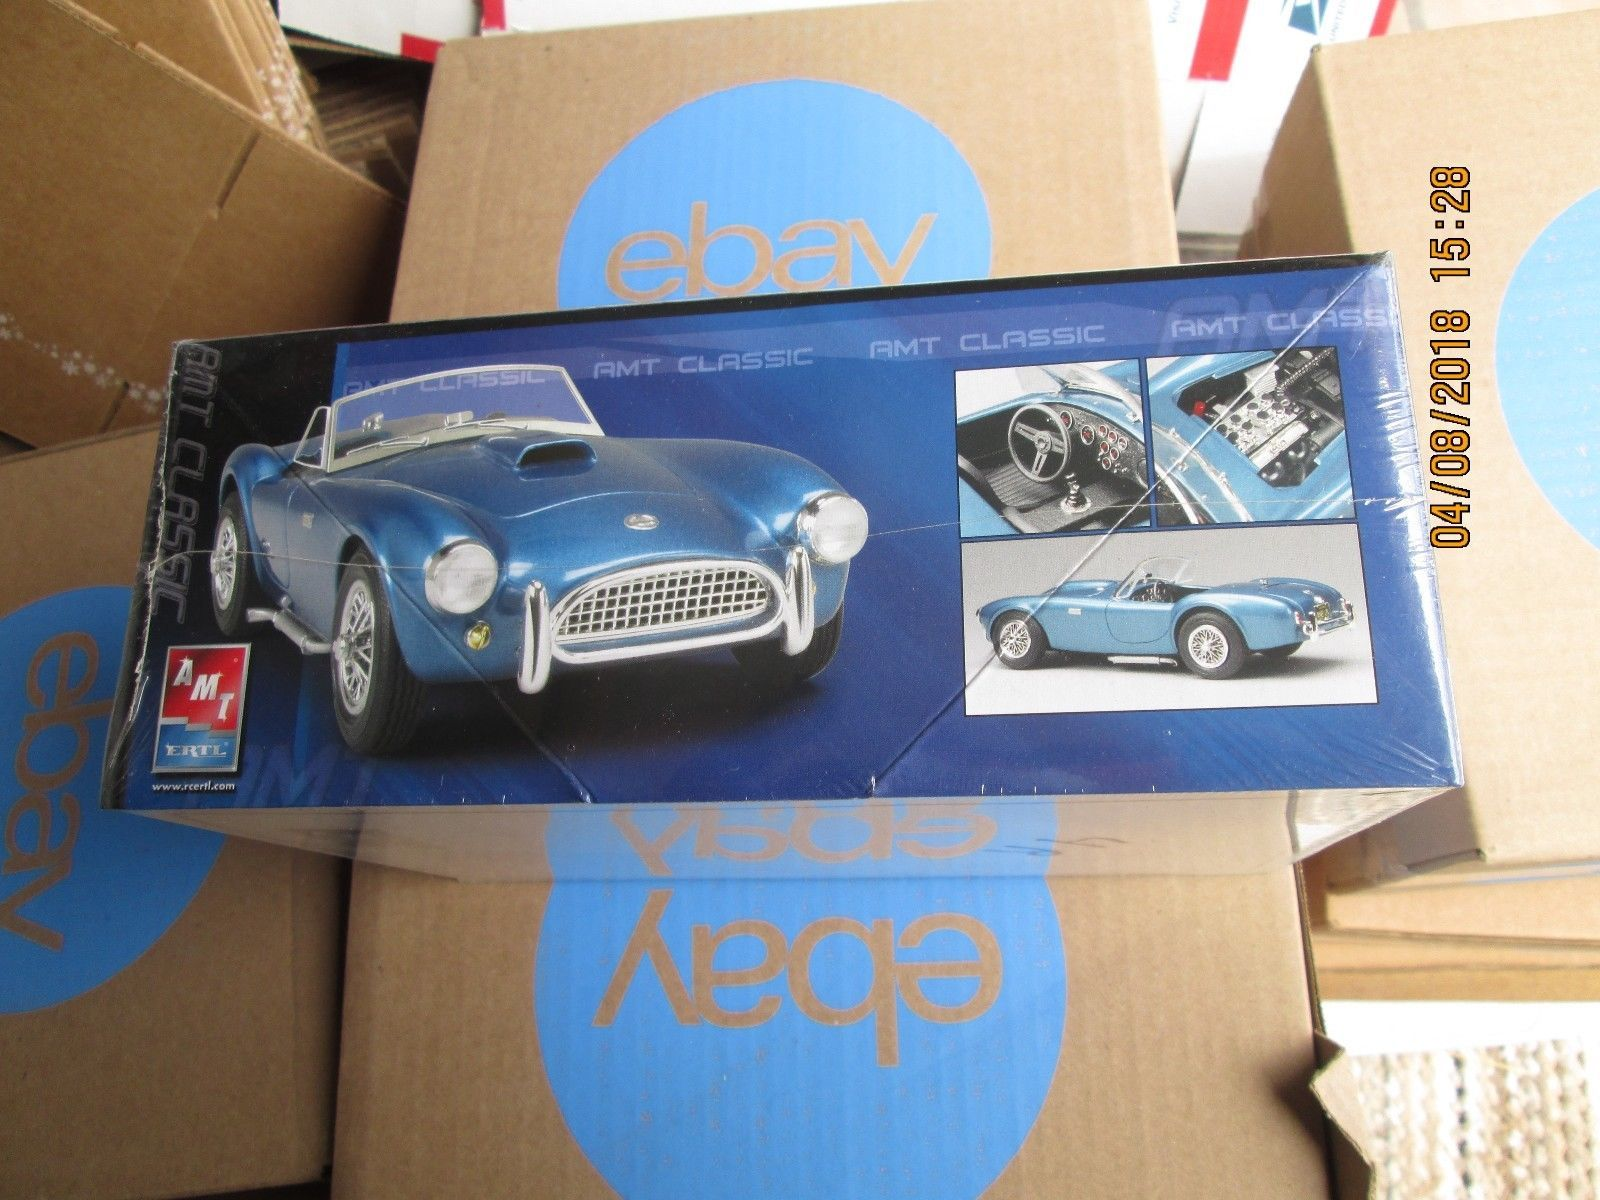 AMT 1963 Shelby Cobra 289 1/25 scale